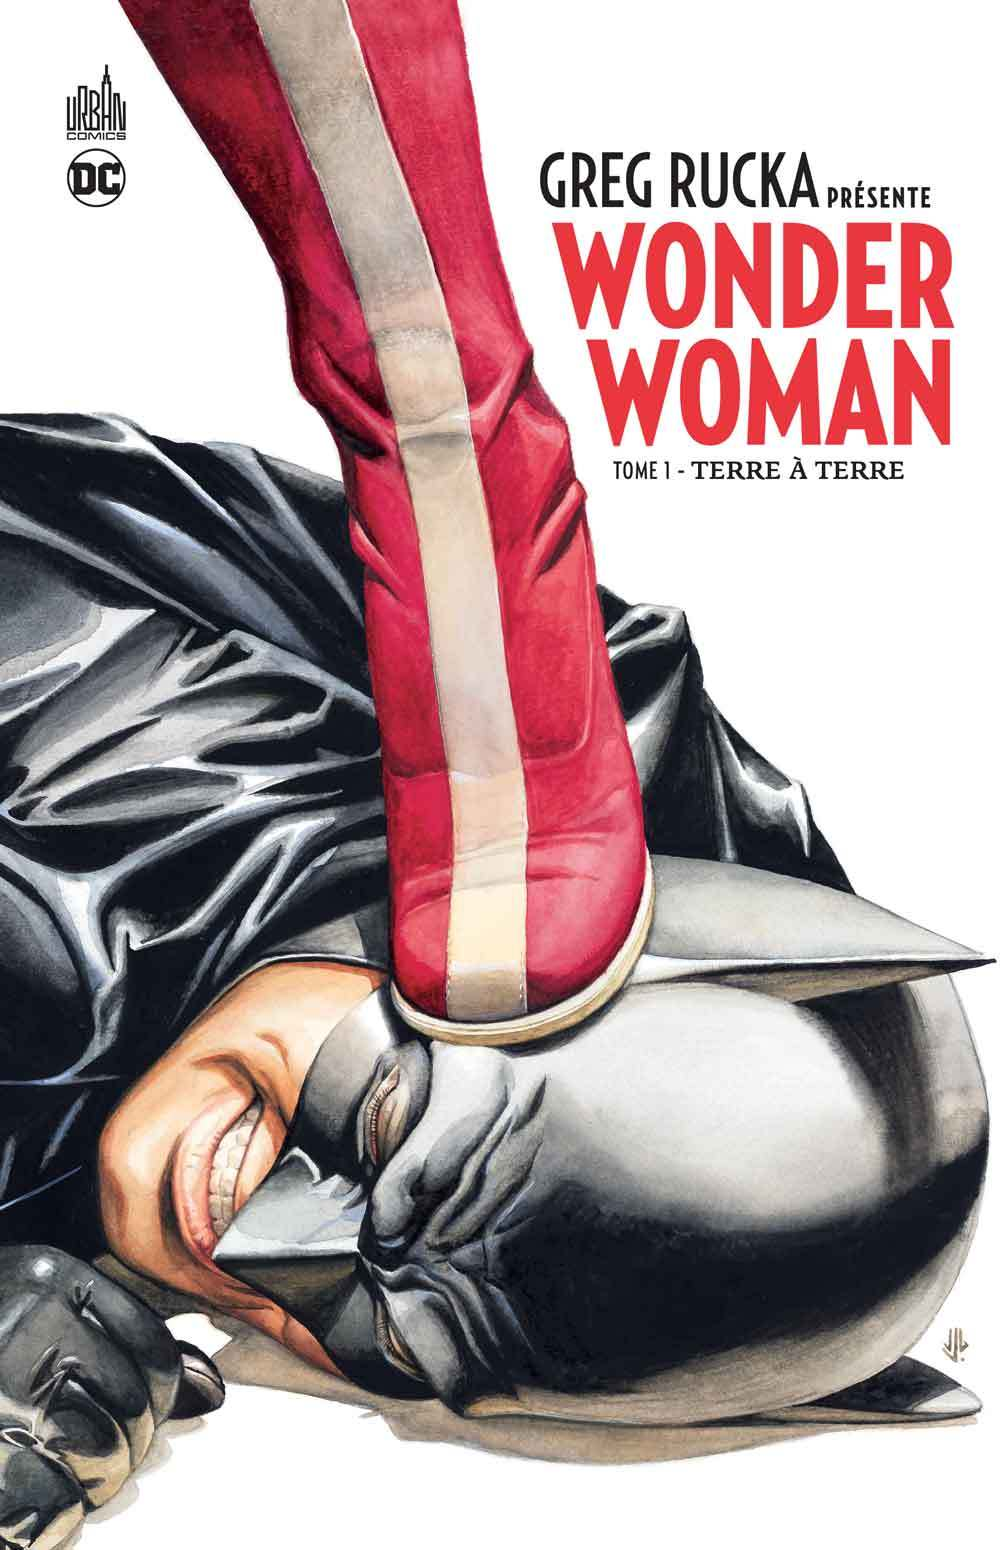 DC SIGNATURES - GREG RUCKA PRESENTE WONDER WOMAN TOME 1